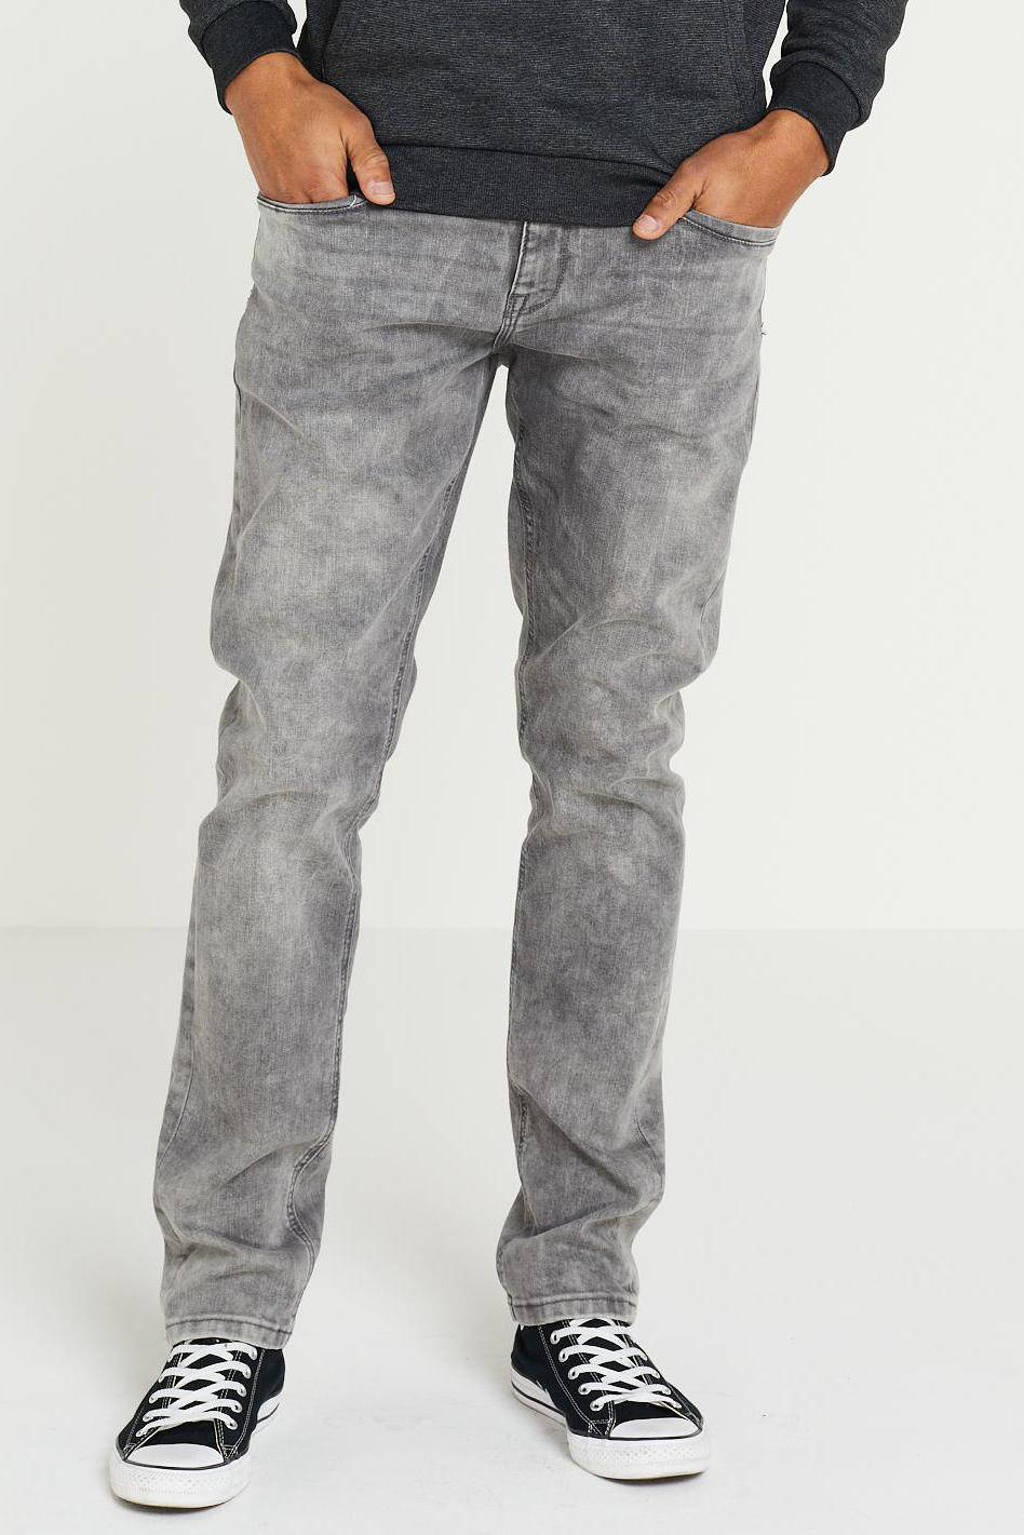 Cars regular fit jeans Douglas grey used, Grey used